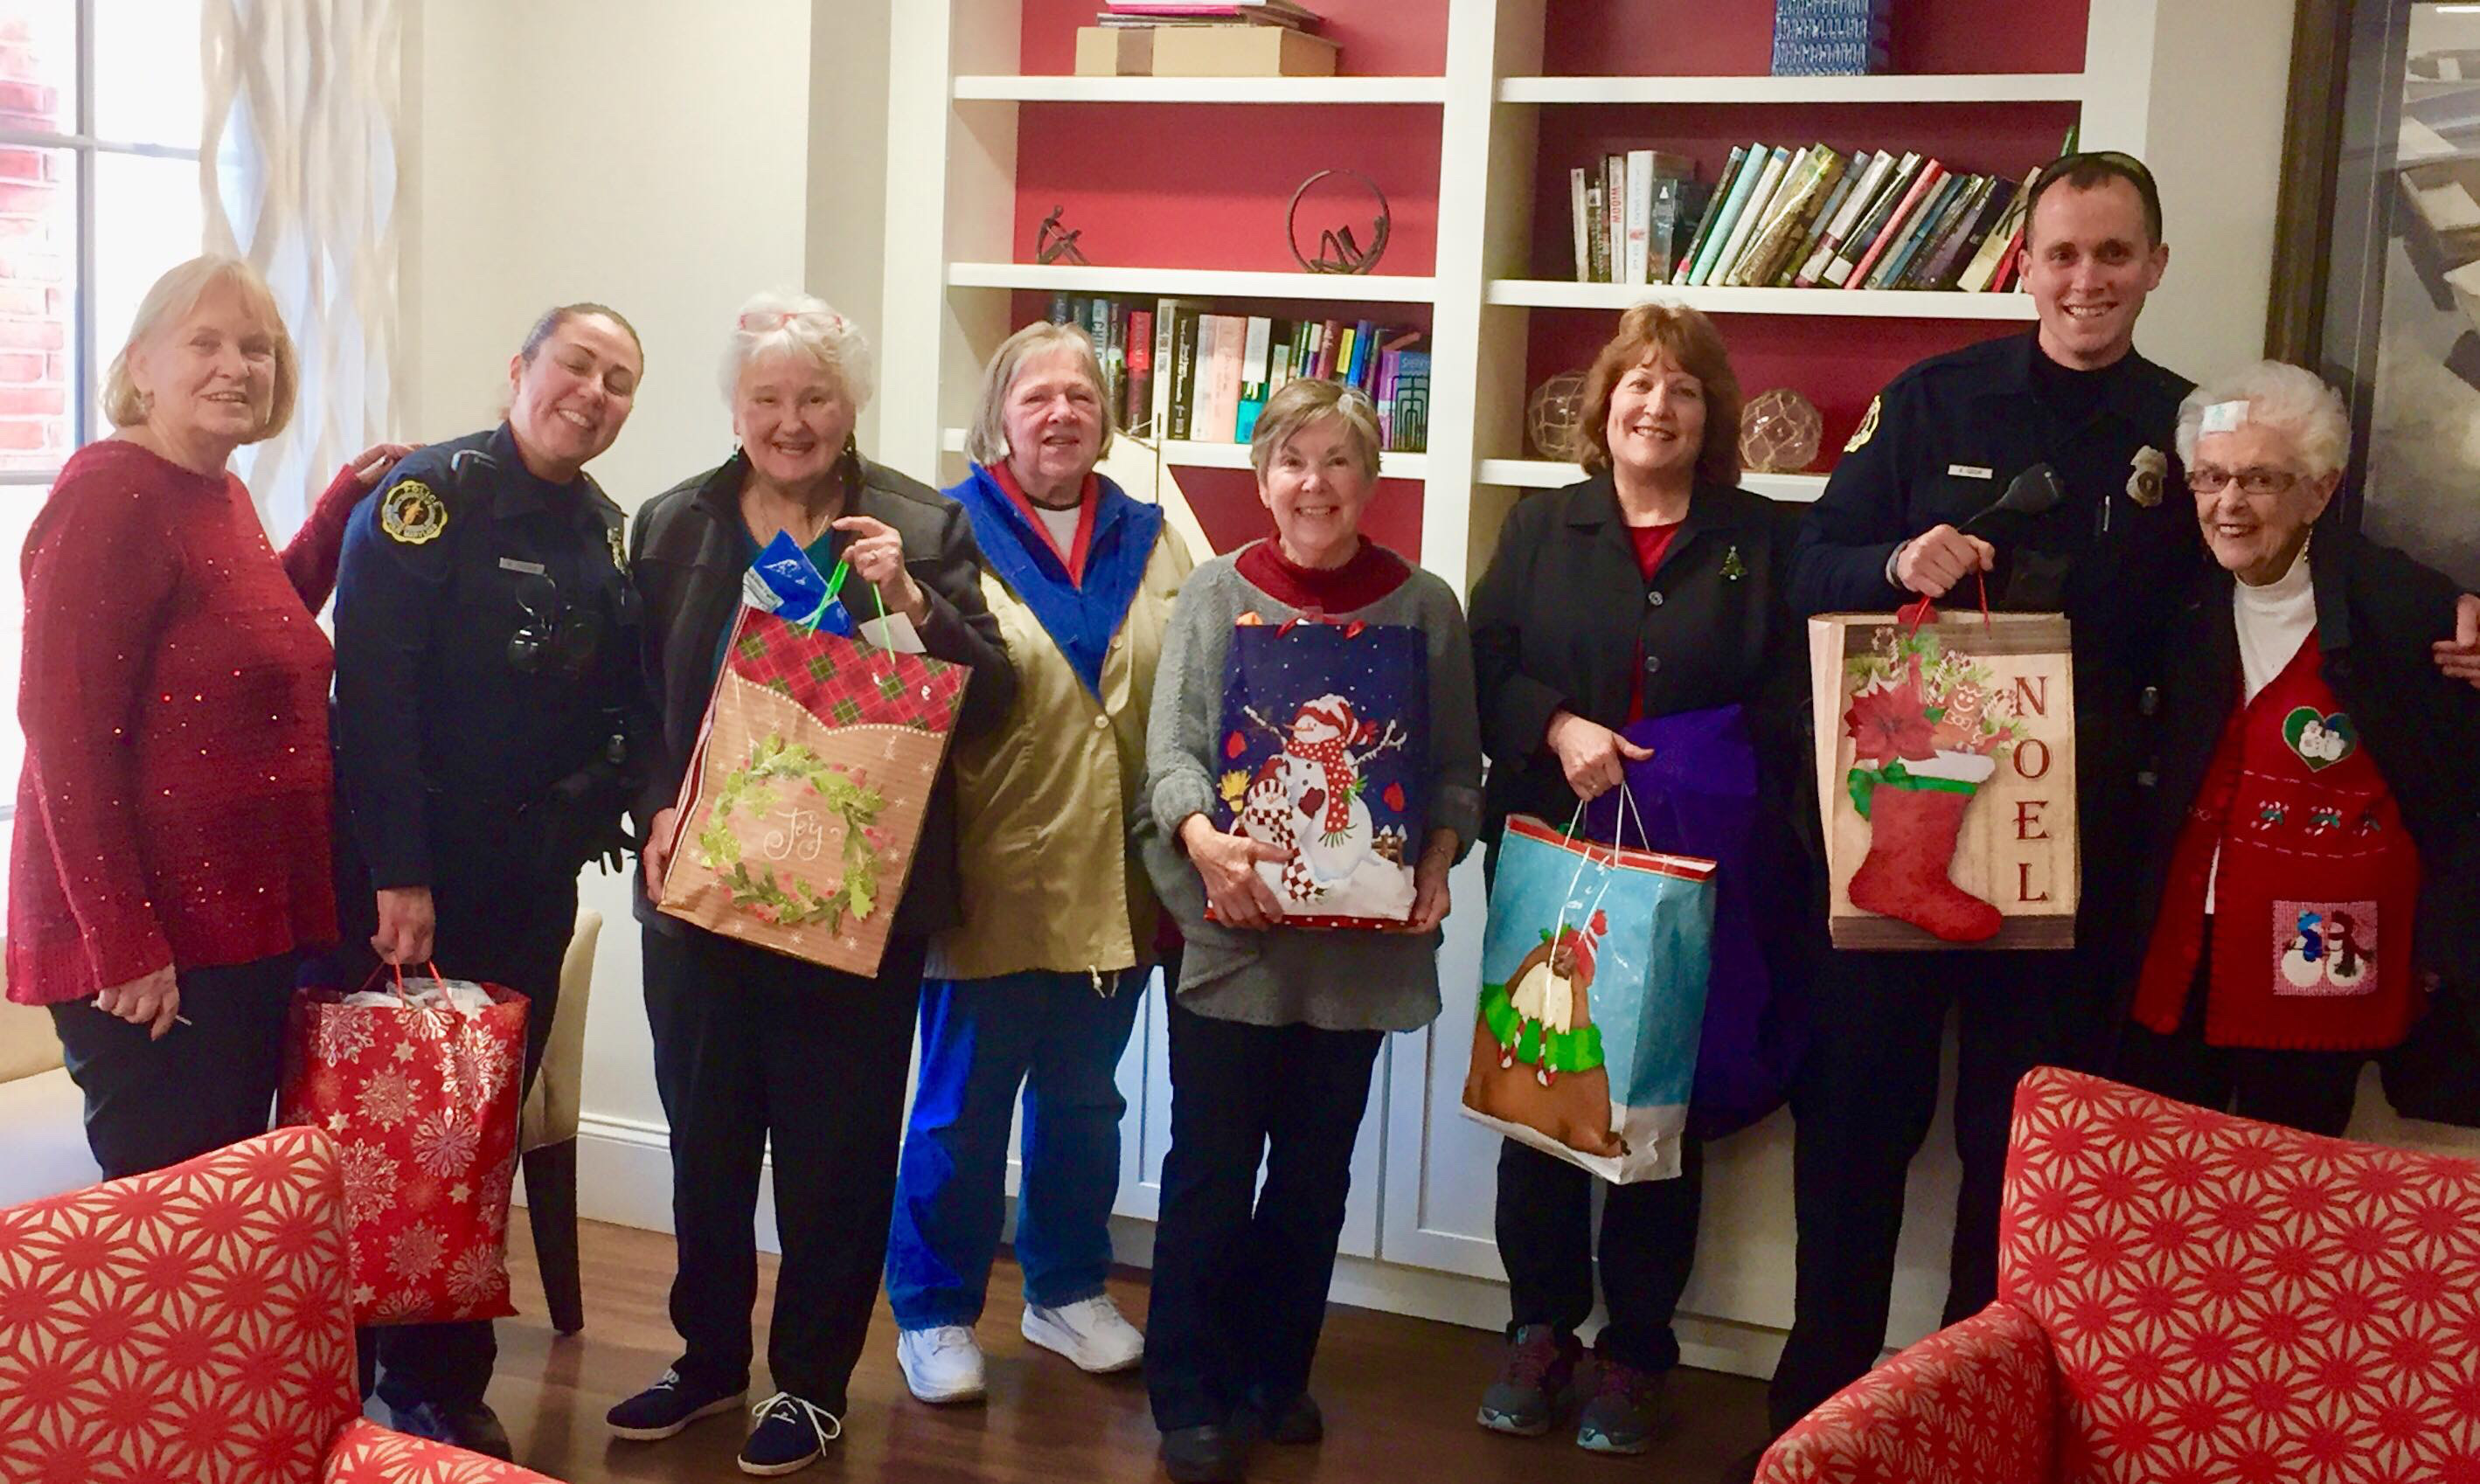 A group of people standing and holding Christmas gift bags.